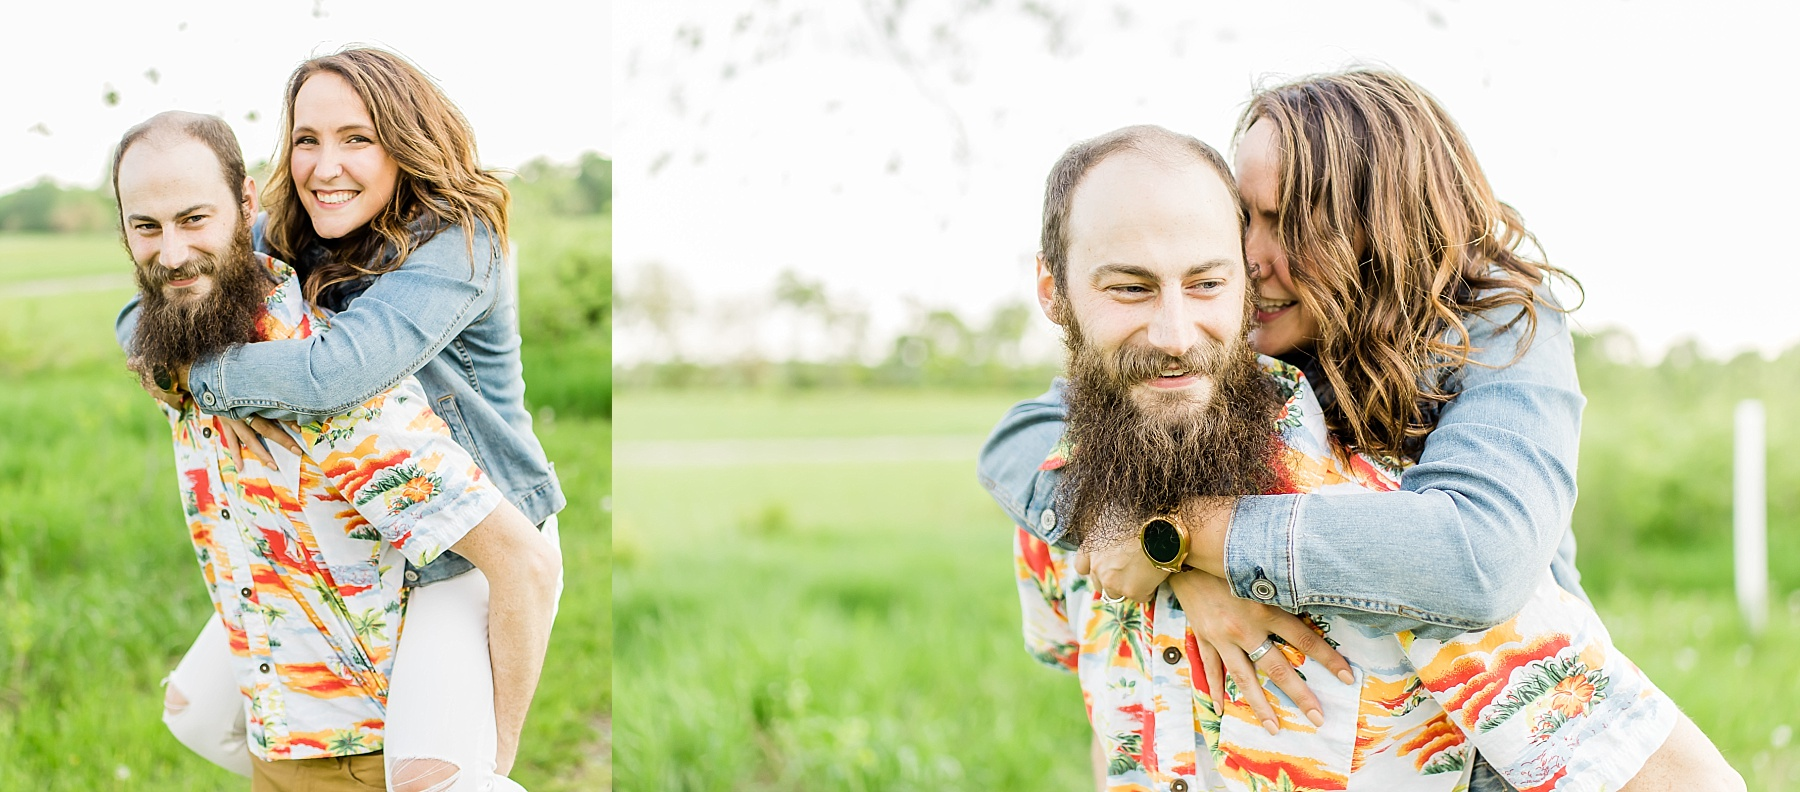 monticello indiana wedding engagement photography simple adventure weird_0039.jpg